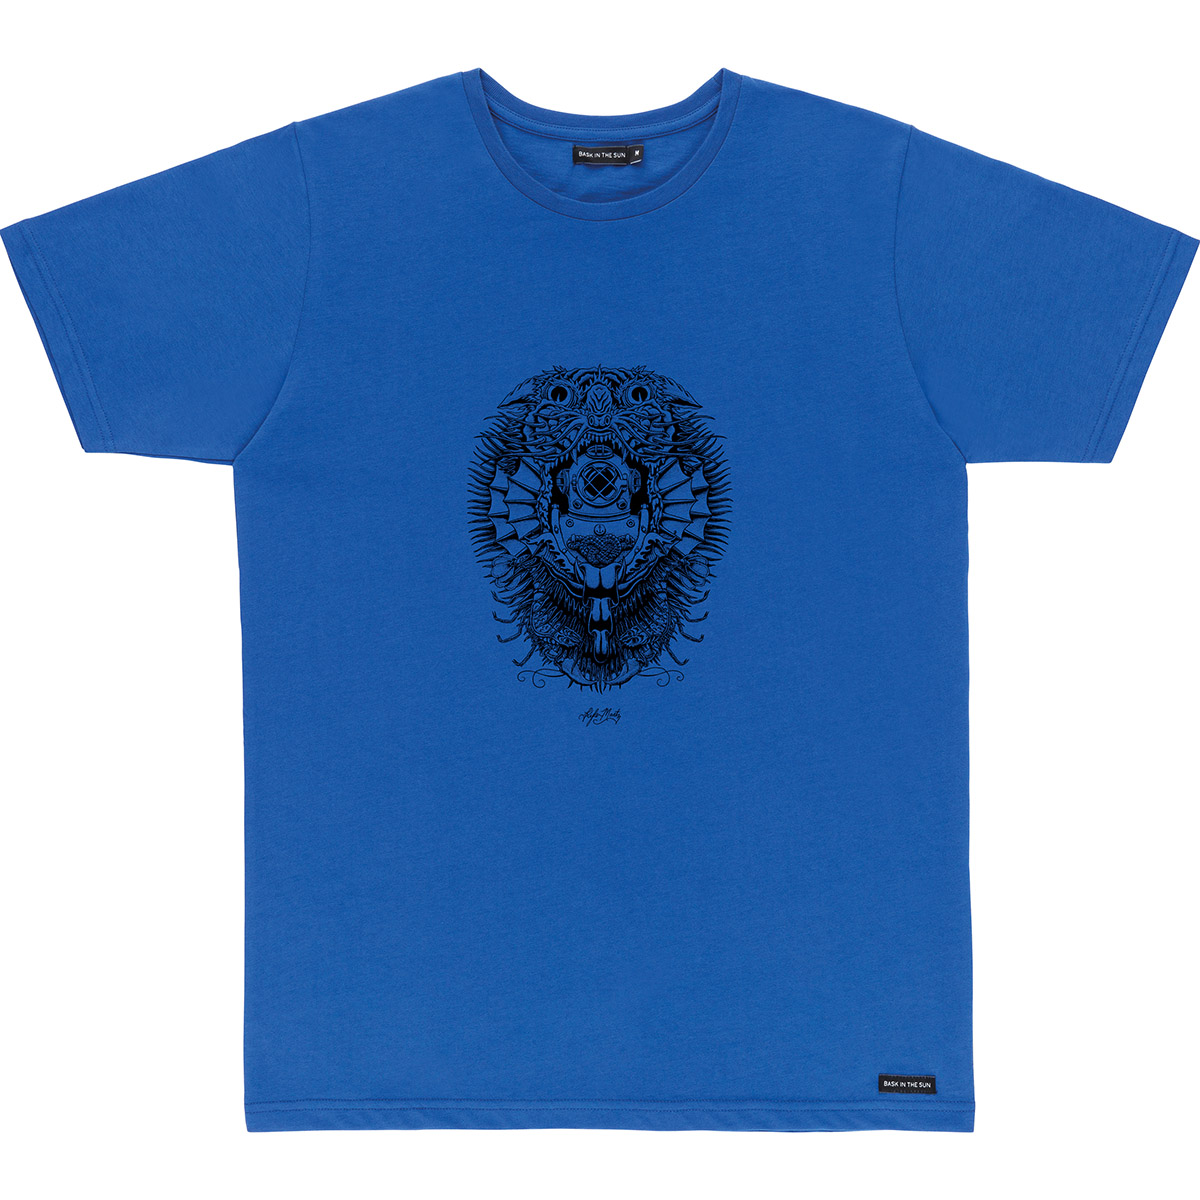 T-shirt en coton bio blue creature - Bask in the Sun num 0